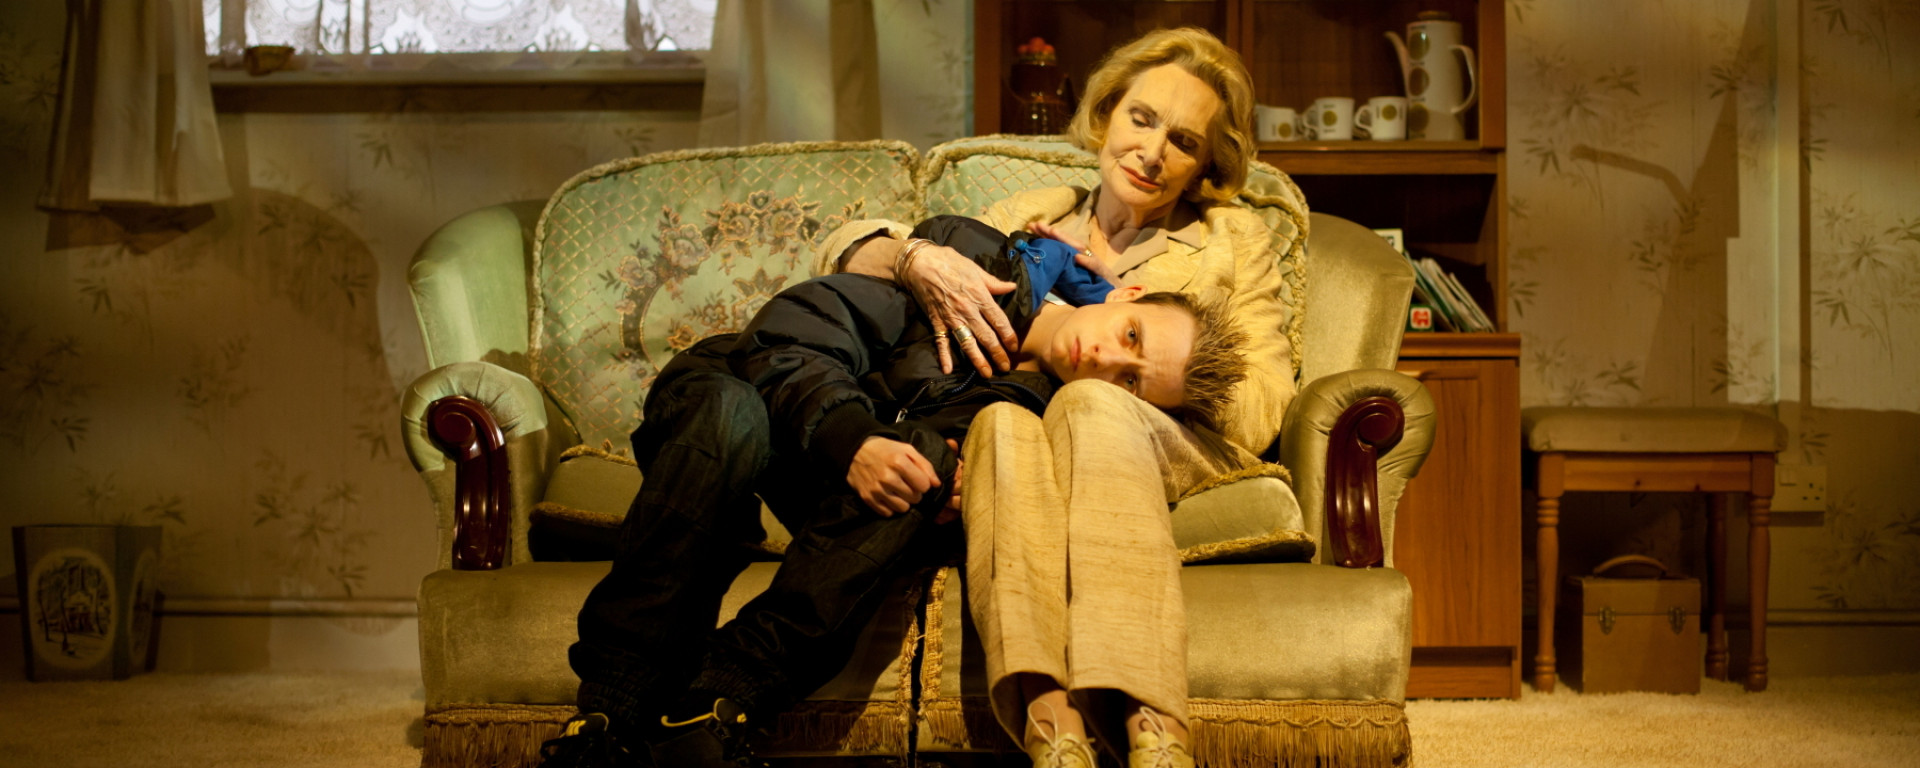 An older woman and younger man sit on a sofa in a living room. The woman is cradling the young man's head on her lap. He looks upset; she's comforting him